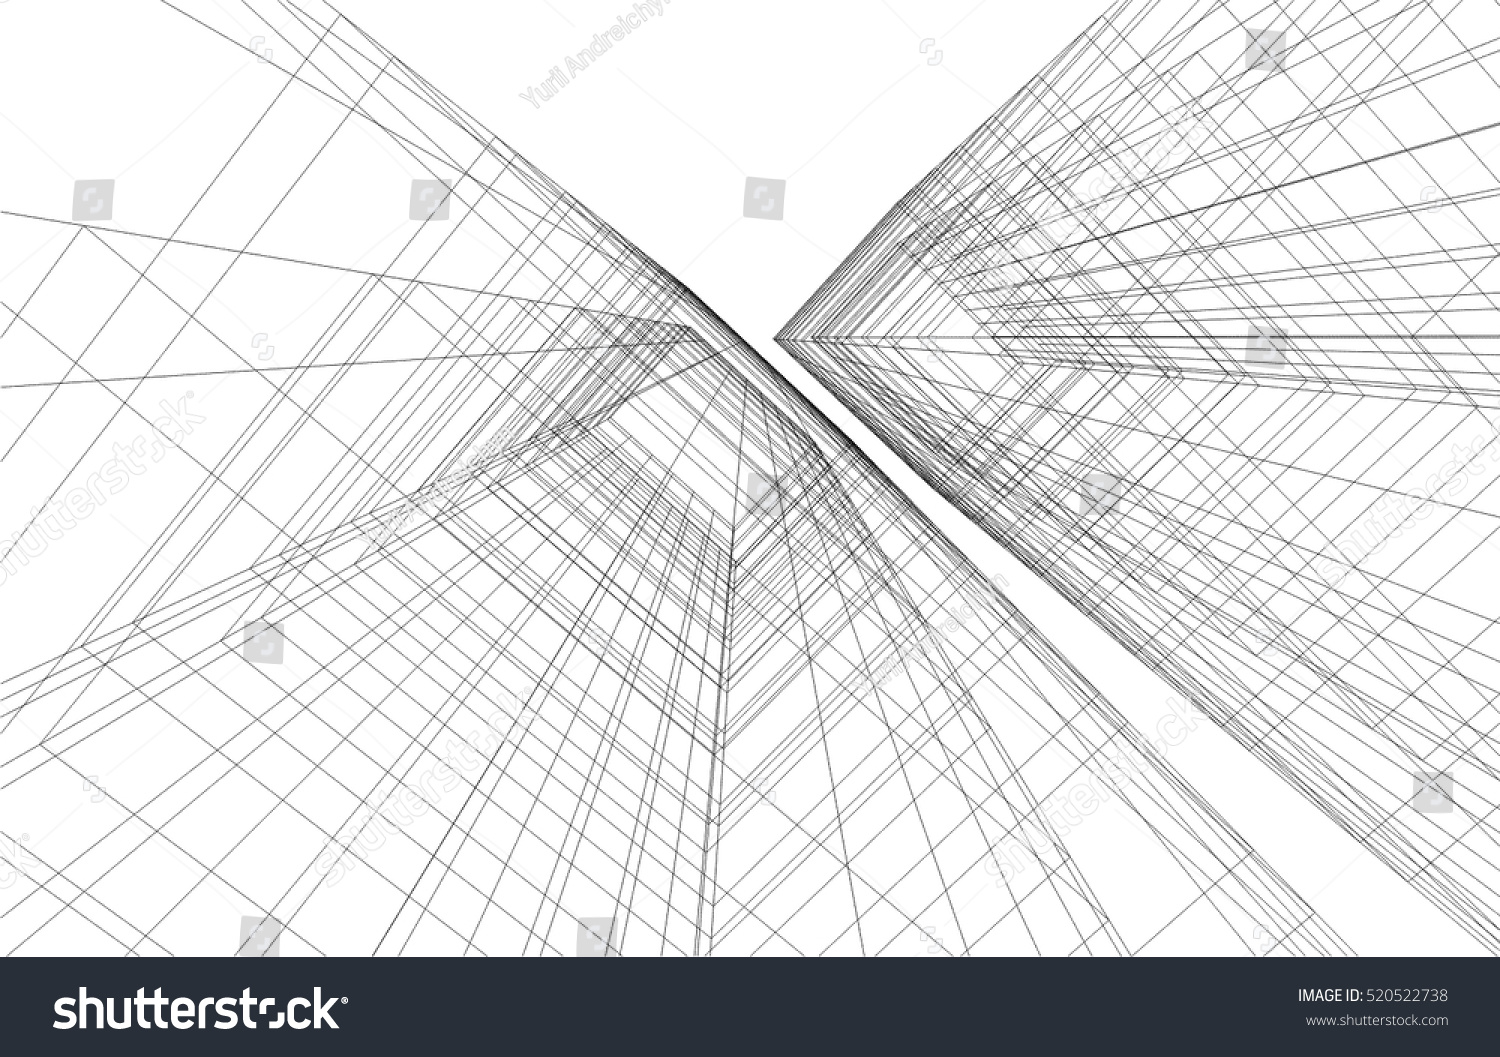 Abstract Architecture Stock Vector 520522738 - Shutterstock